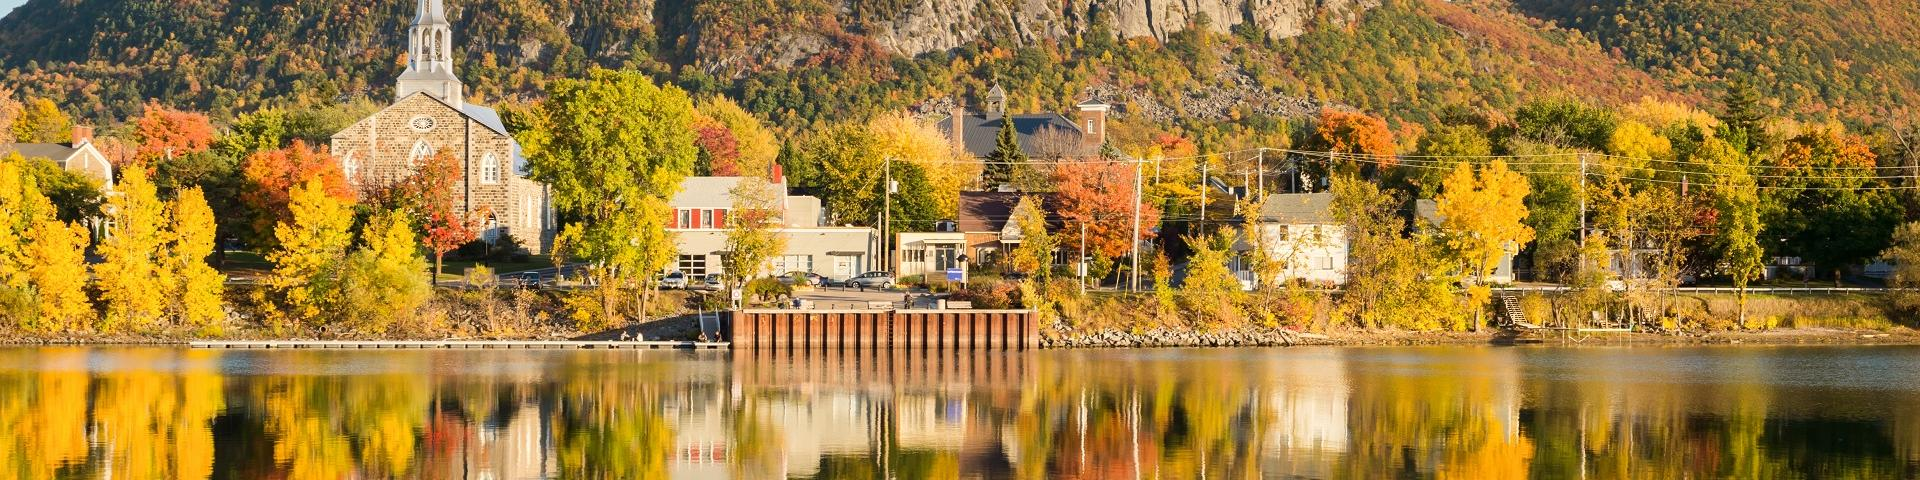 Image of Mont Saint-Hillaire in Fall from Richelieu River banks in Beloeil